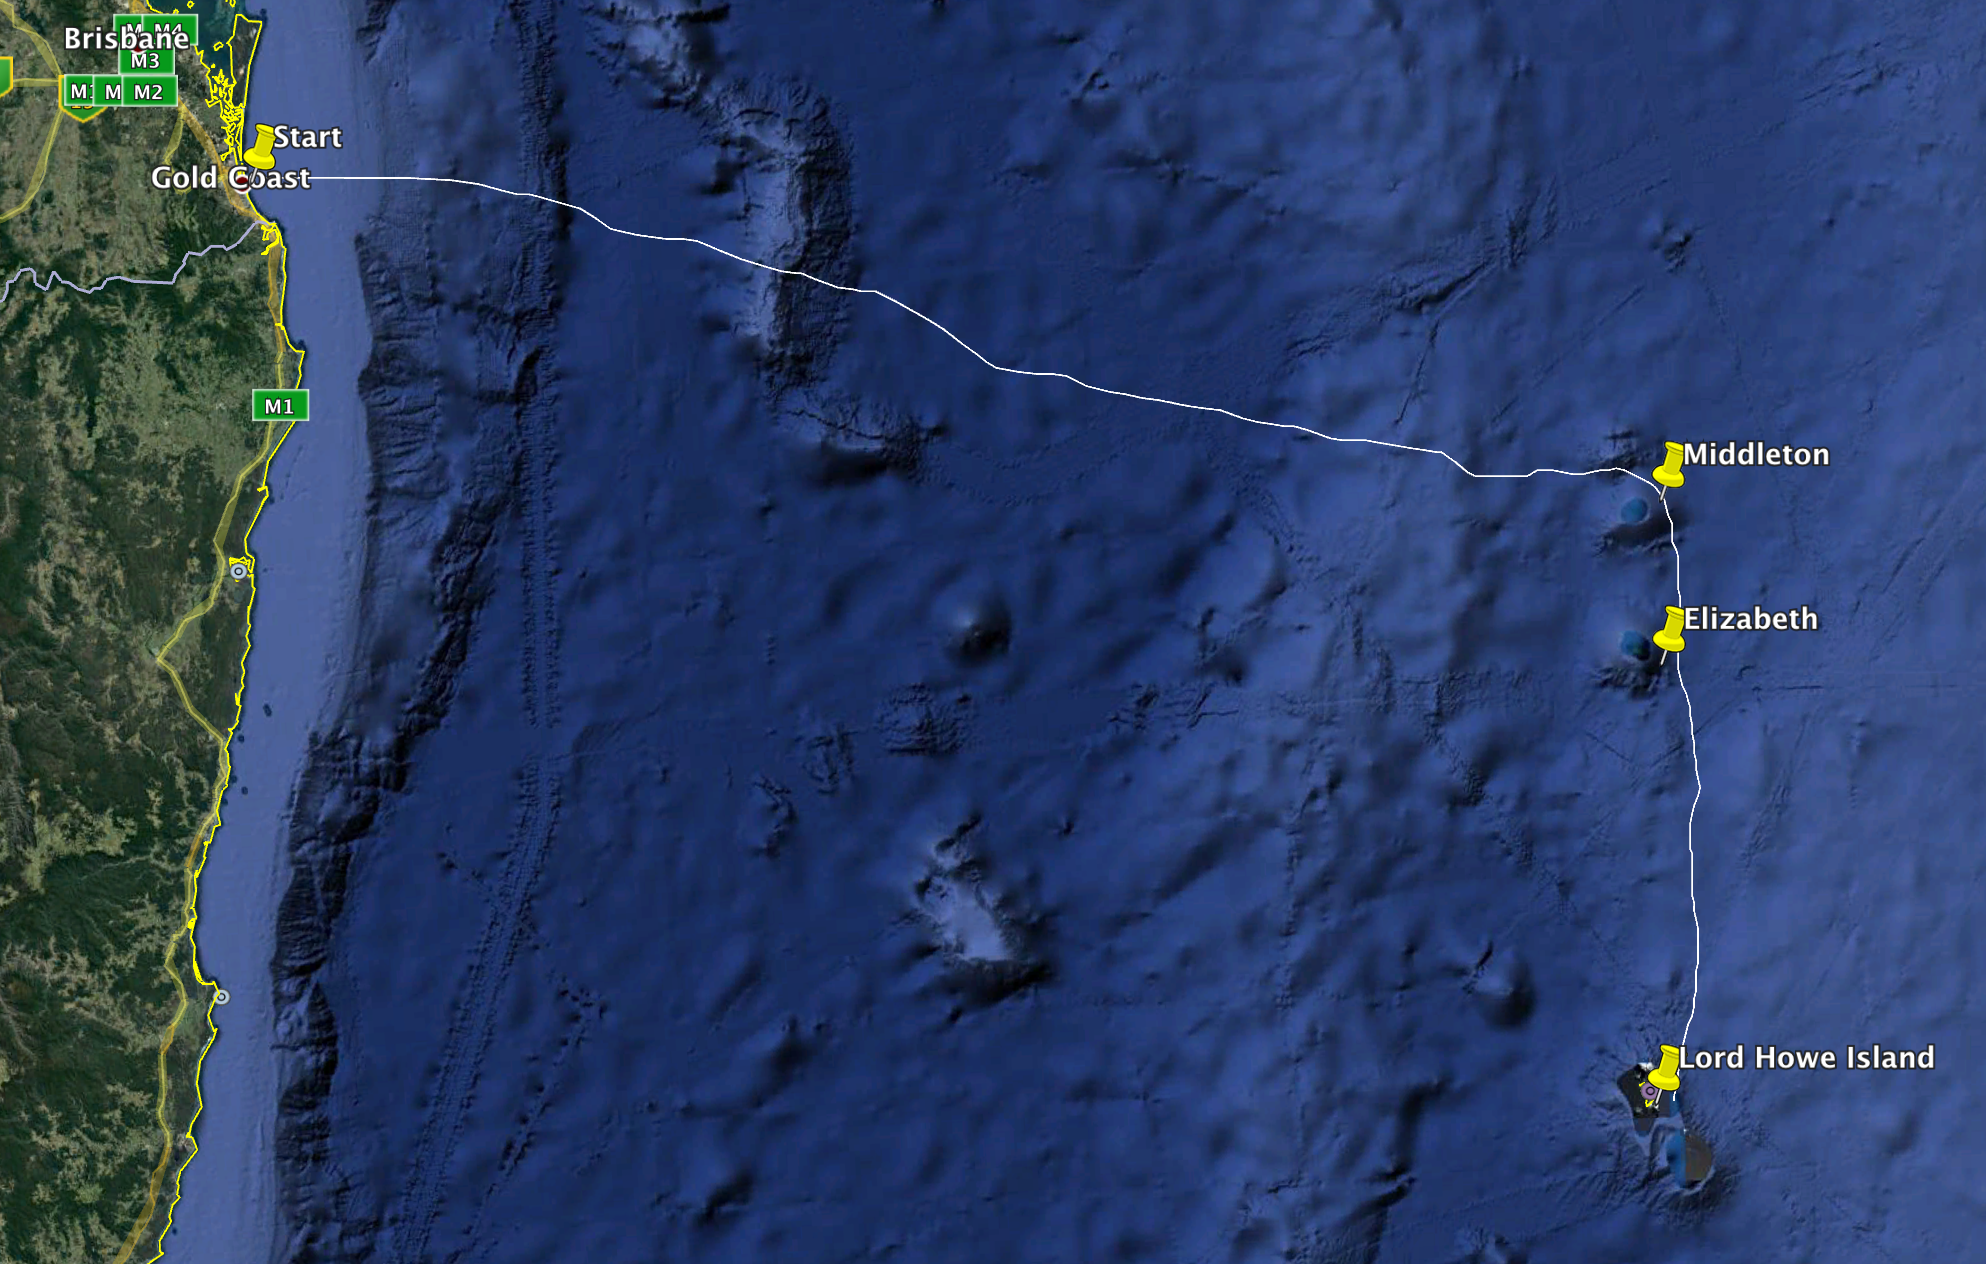 The 450nm route from to Southport to Lord Howe Island via Middleton and Elizabeth Reefs.